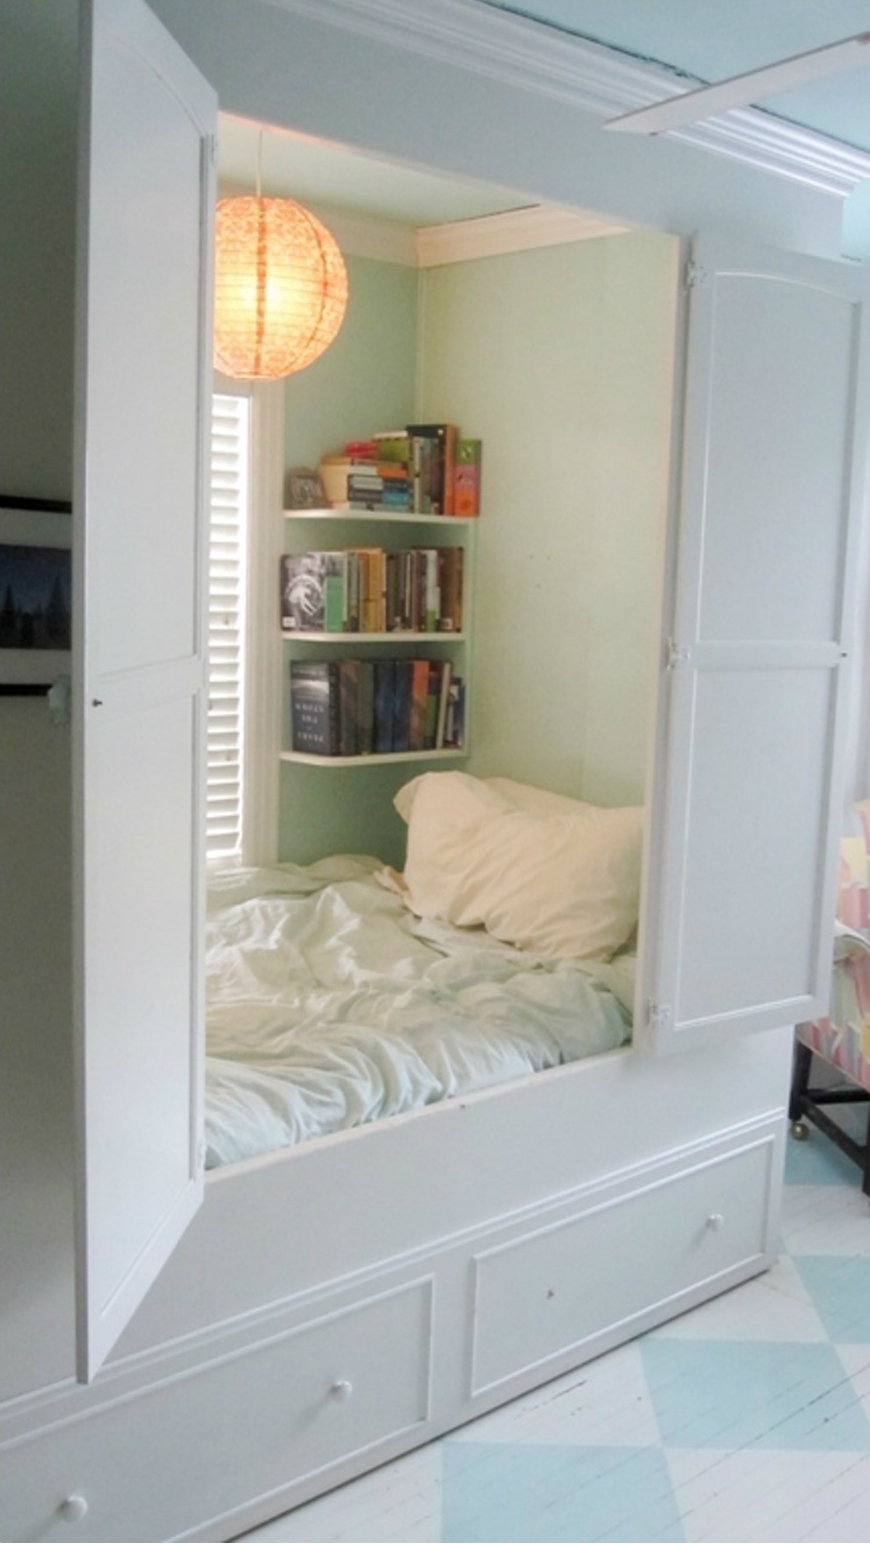 Incredible Reading Nooks For Kids That All Family Will Love ➤ Discover the season's newest designs and inspirations for your kids. Visit us at www.kidsbedroomideas.eu #KidsBedroomIdeas #KidsBedrooms #KidsBedroomDesigns @KidsBedroomBlog reading nooks for kids Incredible Reading Nooks For Kids That All Family Will Love Incredible Reading Nooks For Kids That All Family Will Love 1